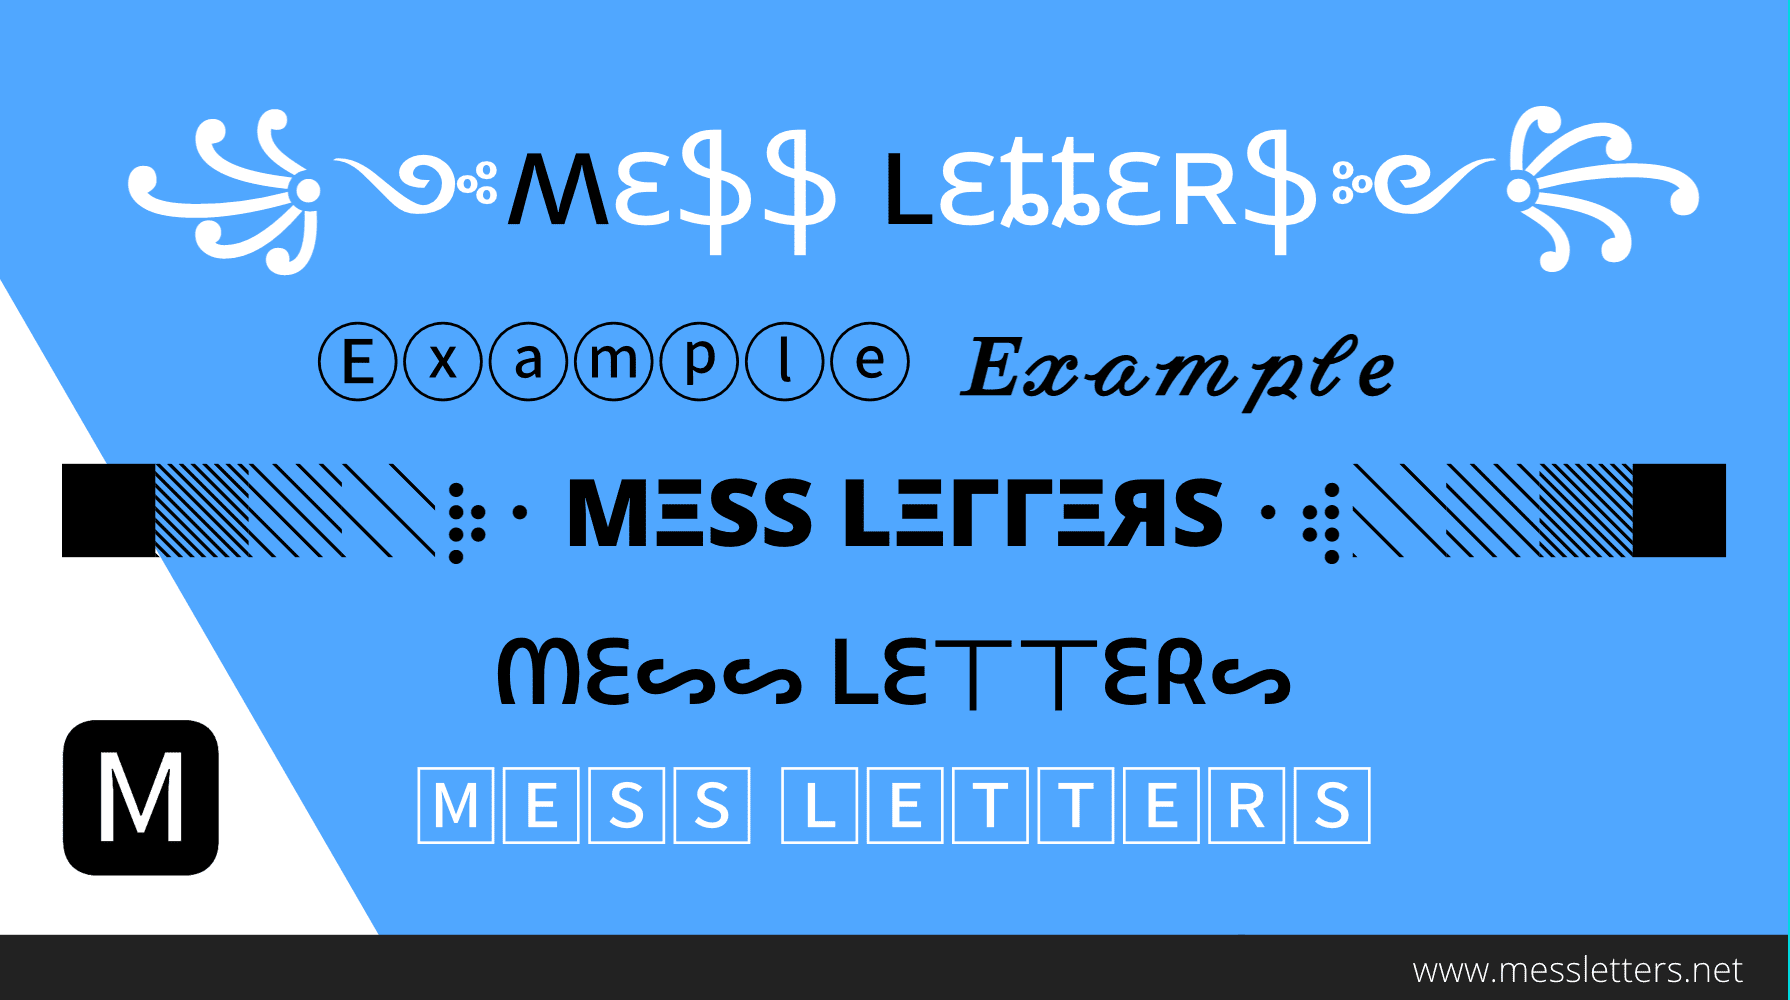 messletters featured image